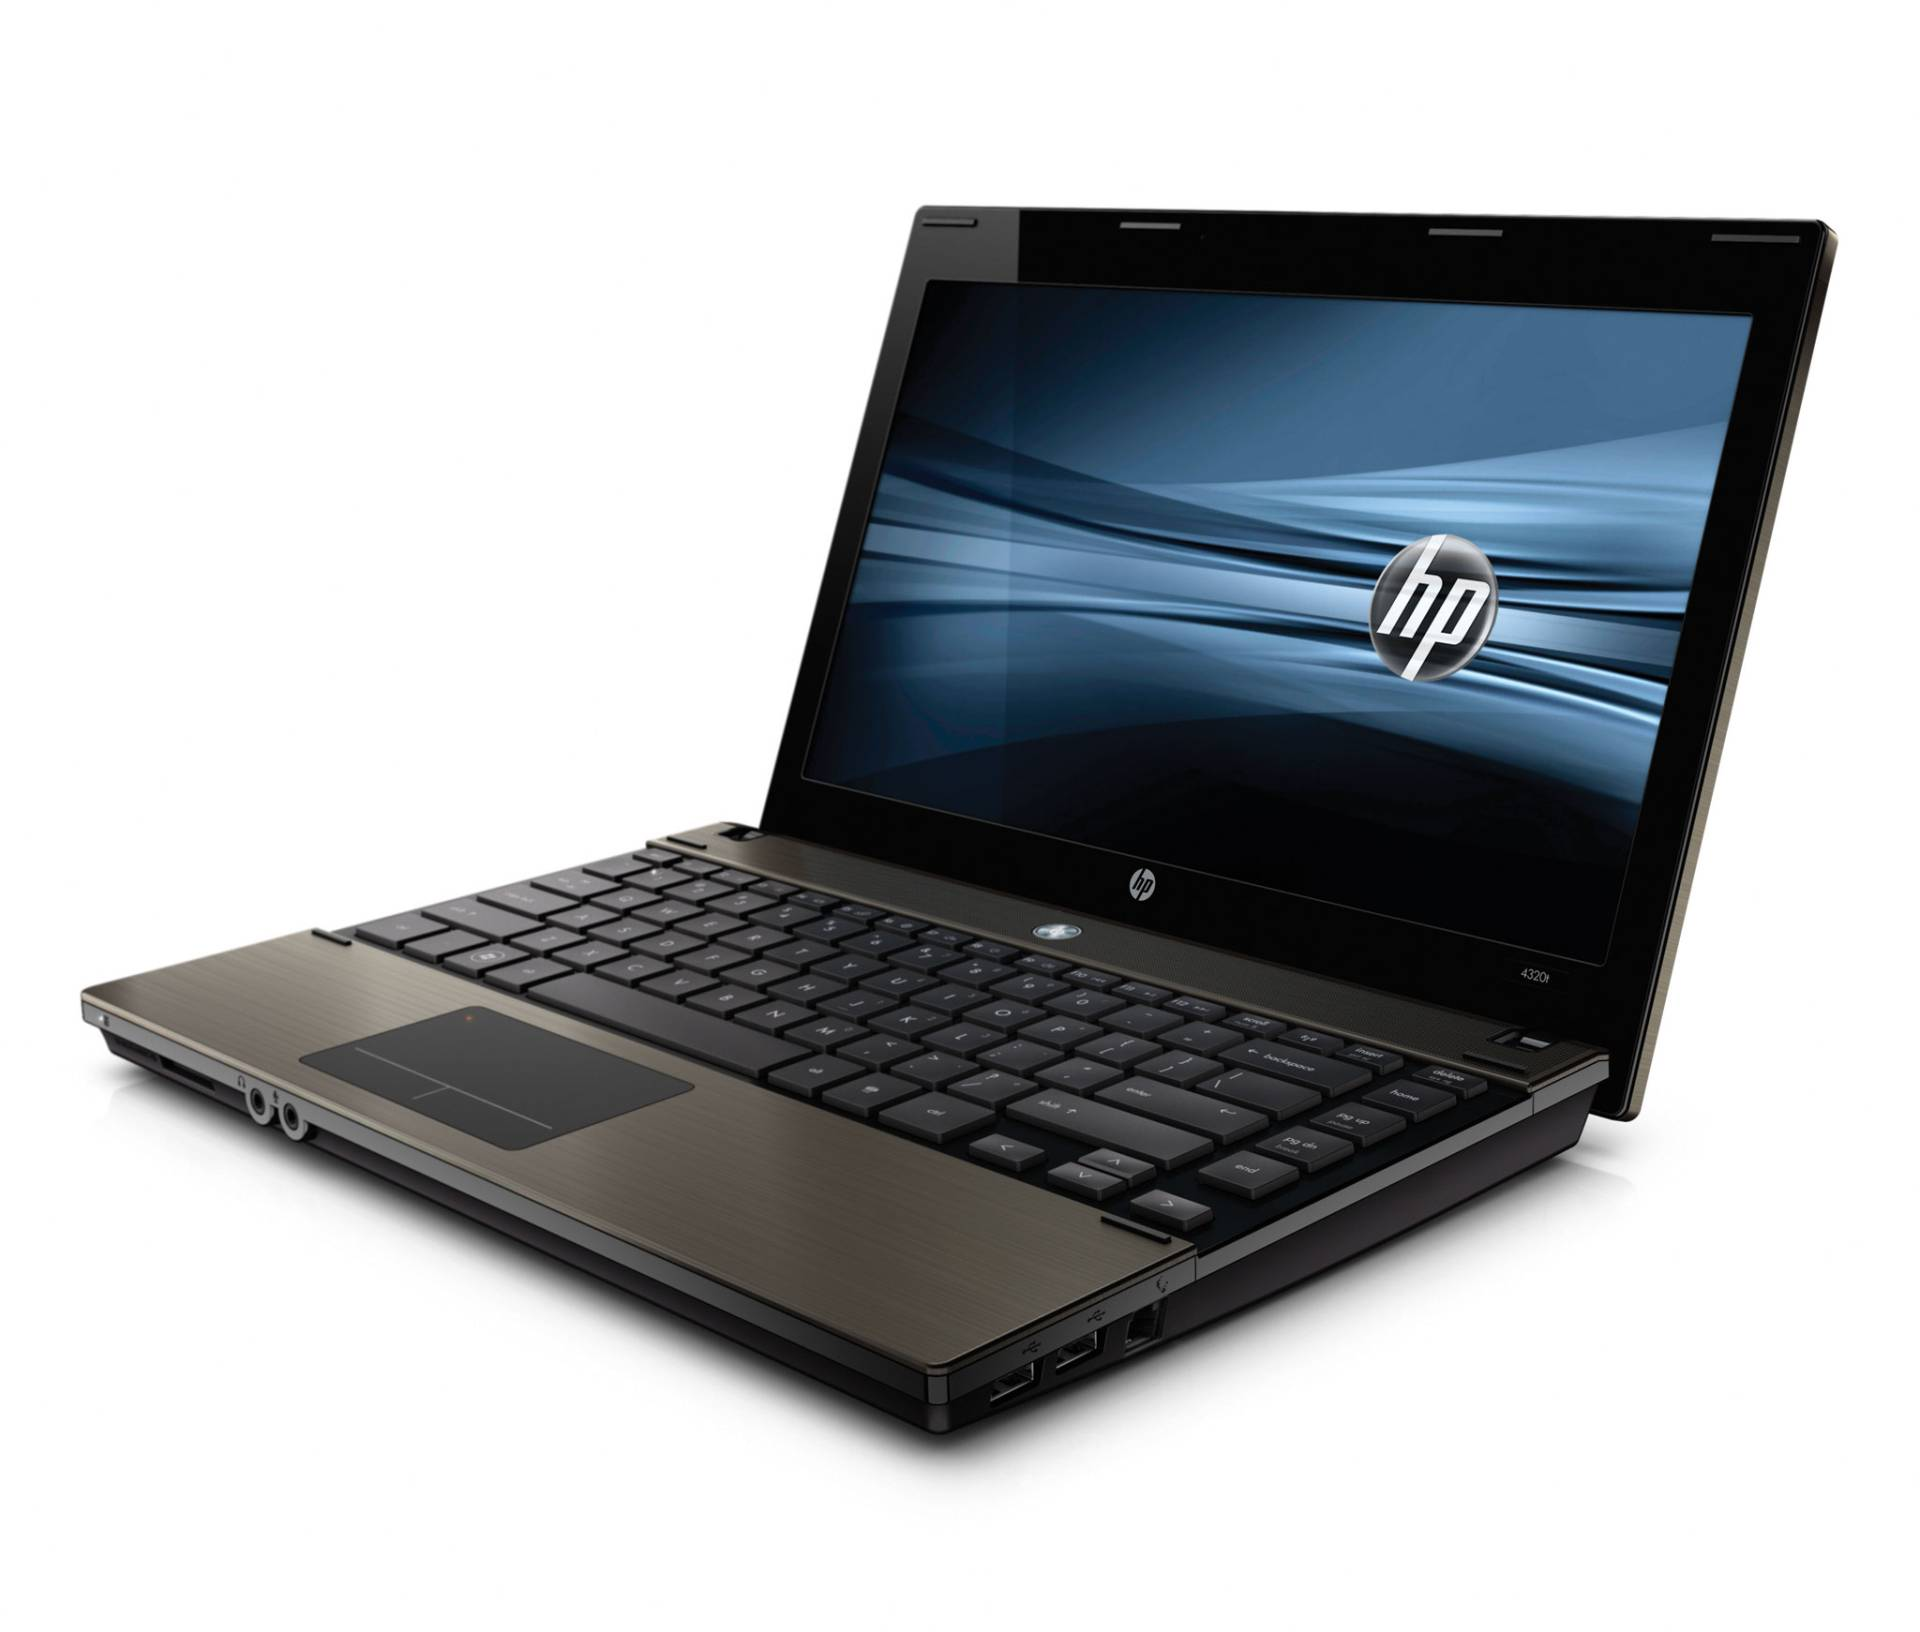 HP WZ255UT#ABA 4320T 13.3 LCD Thin Client Laptop